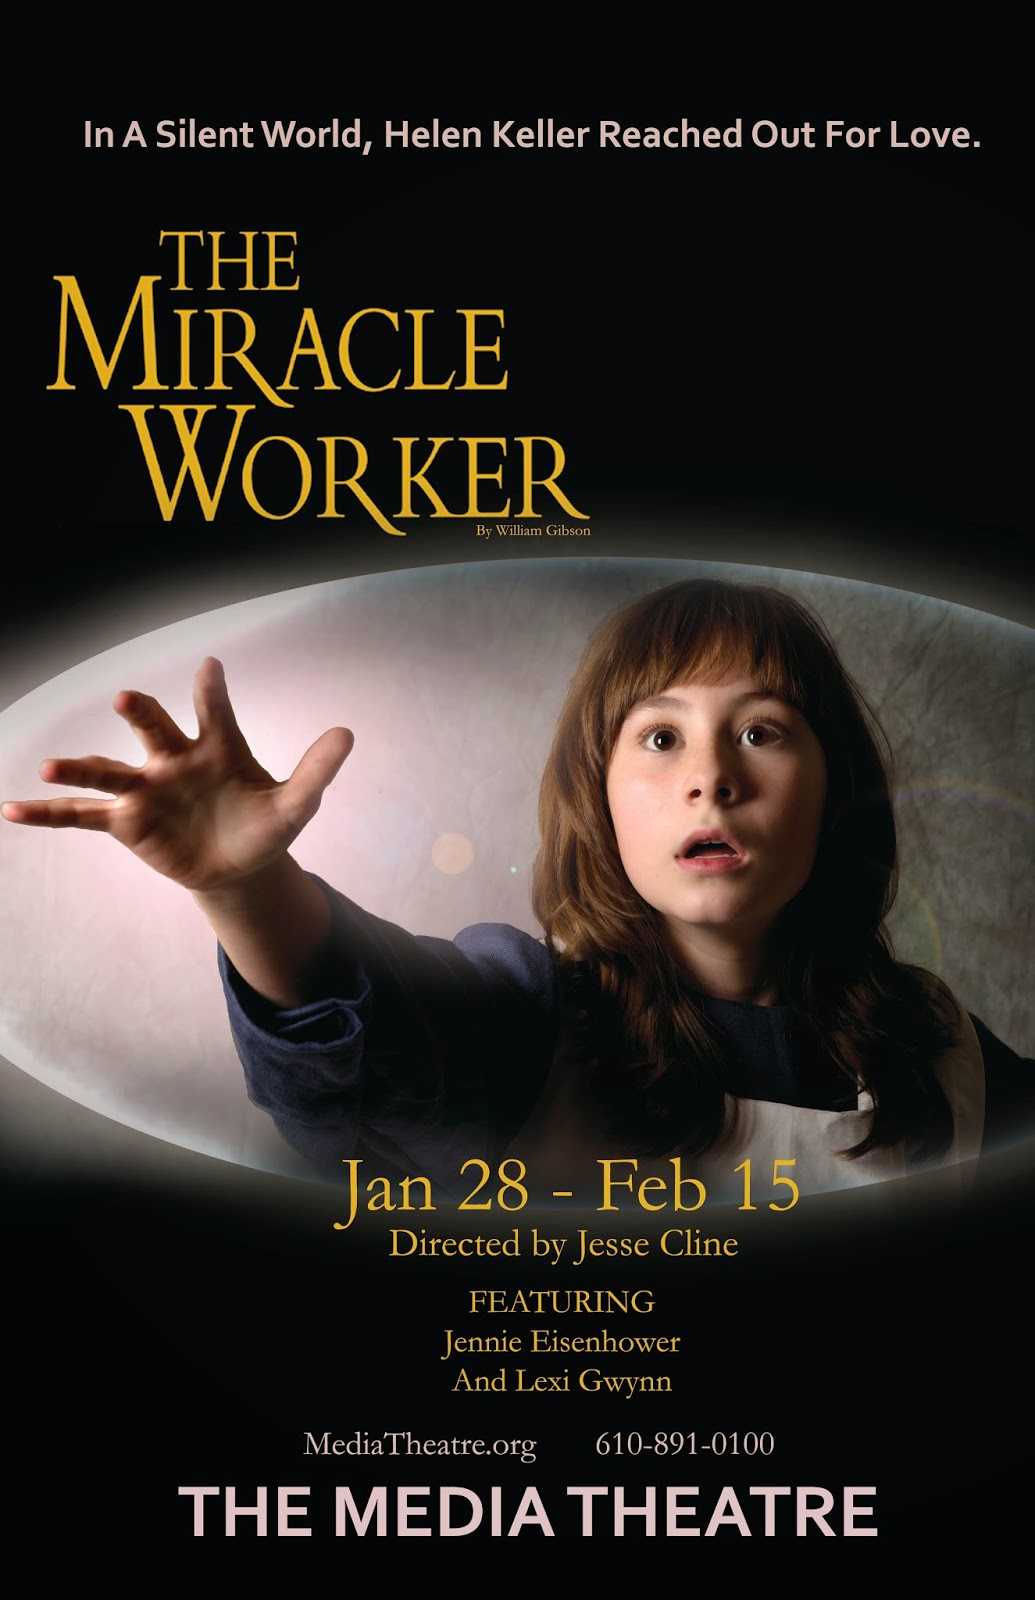 miracle worker The miracle worker is a three-act play by william gibson adapted from his 1957 playhouse 90 teleplay of the same name it is based on helen keller's autobiography the story of my life.